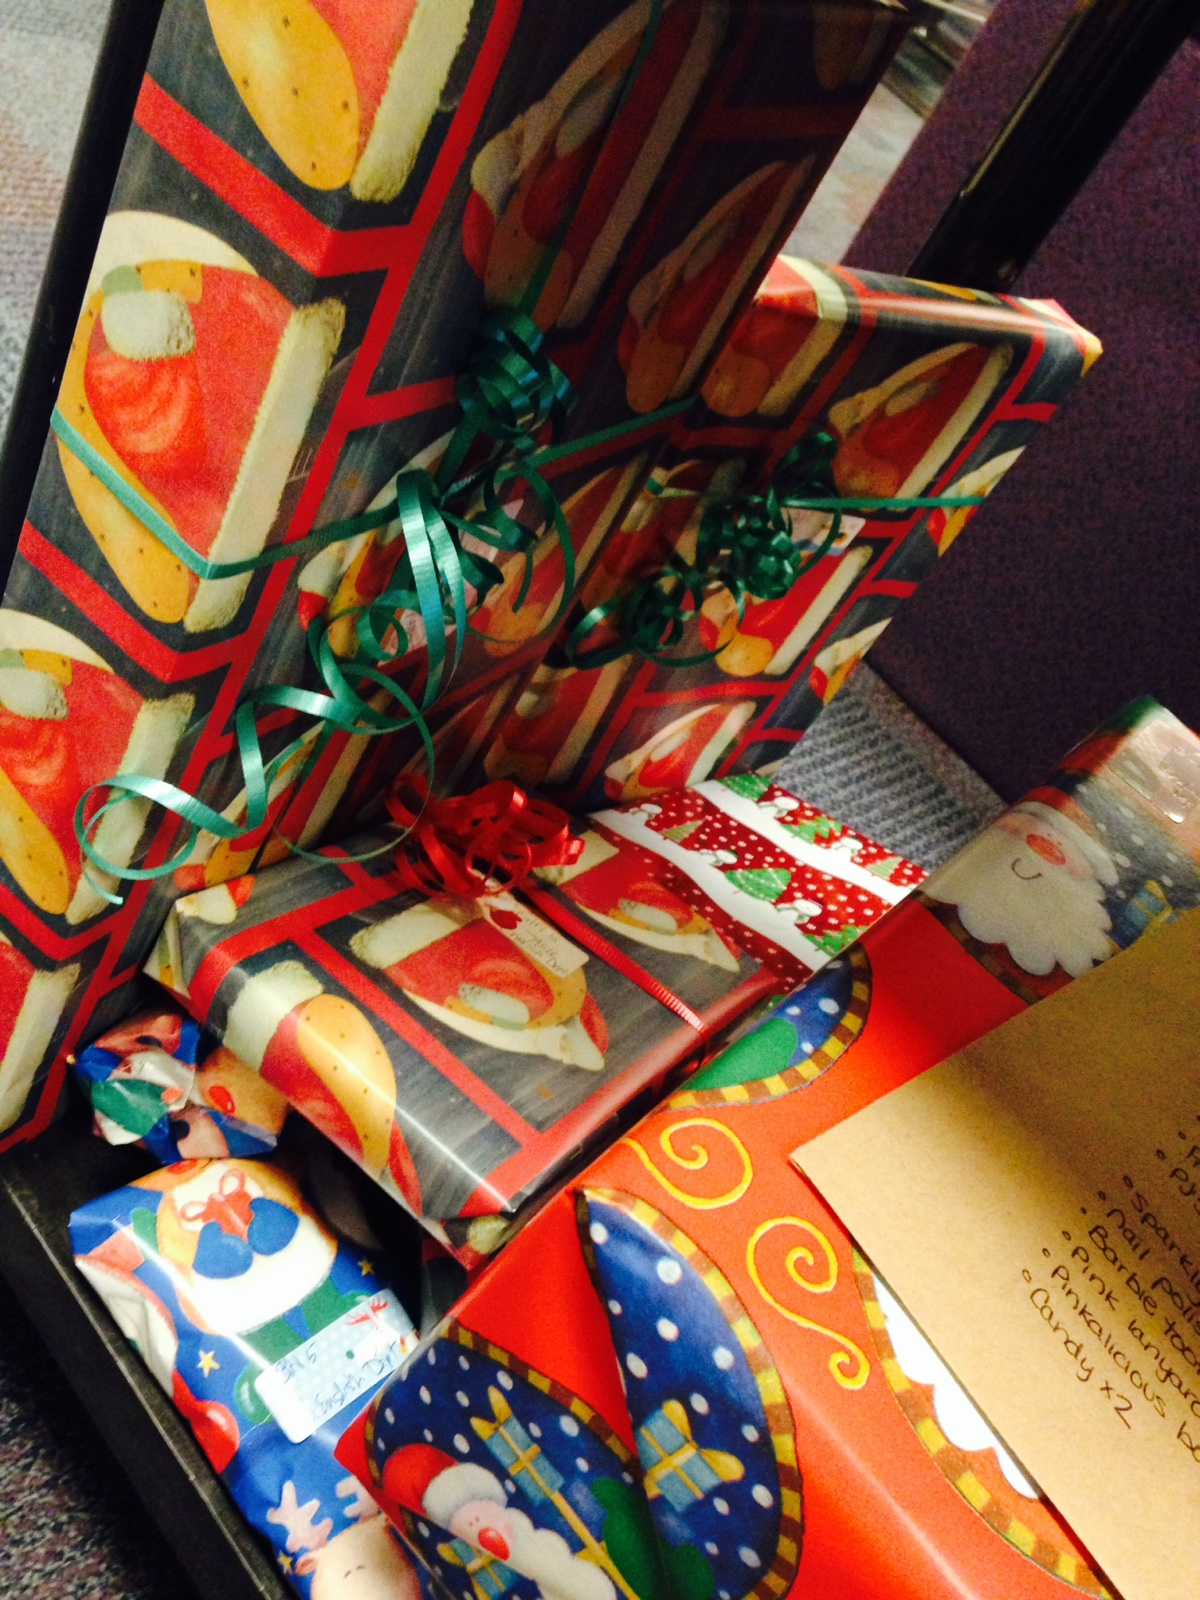 Gifts for families donated to this drive in 2014